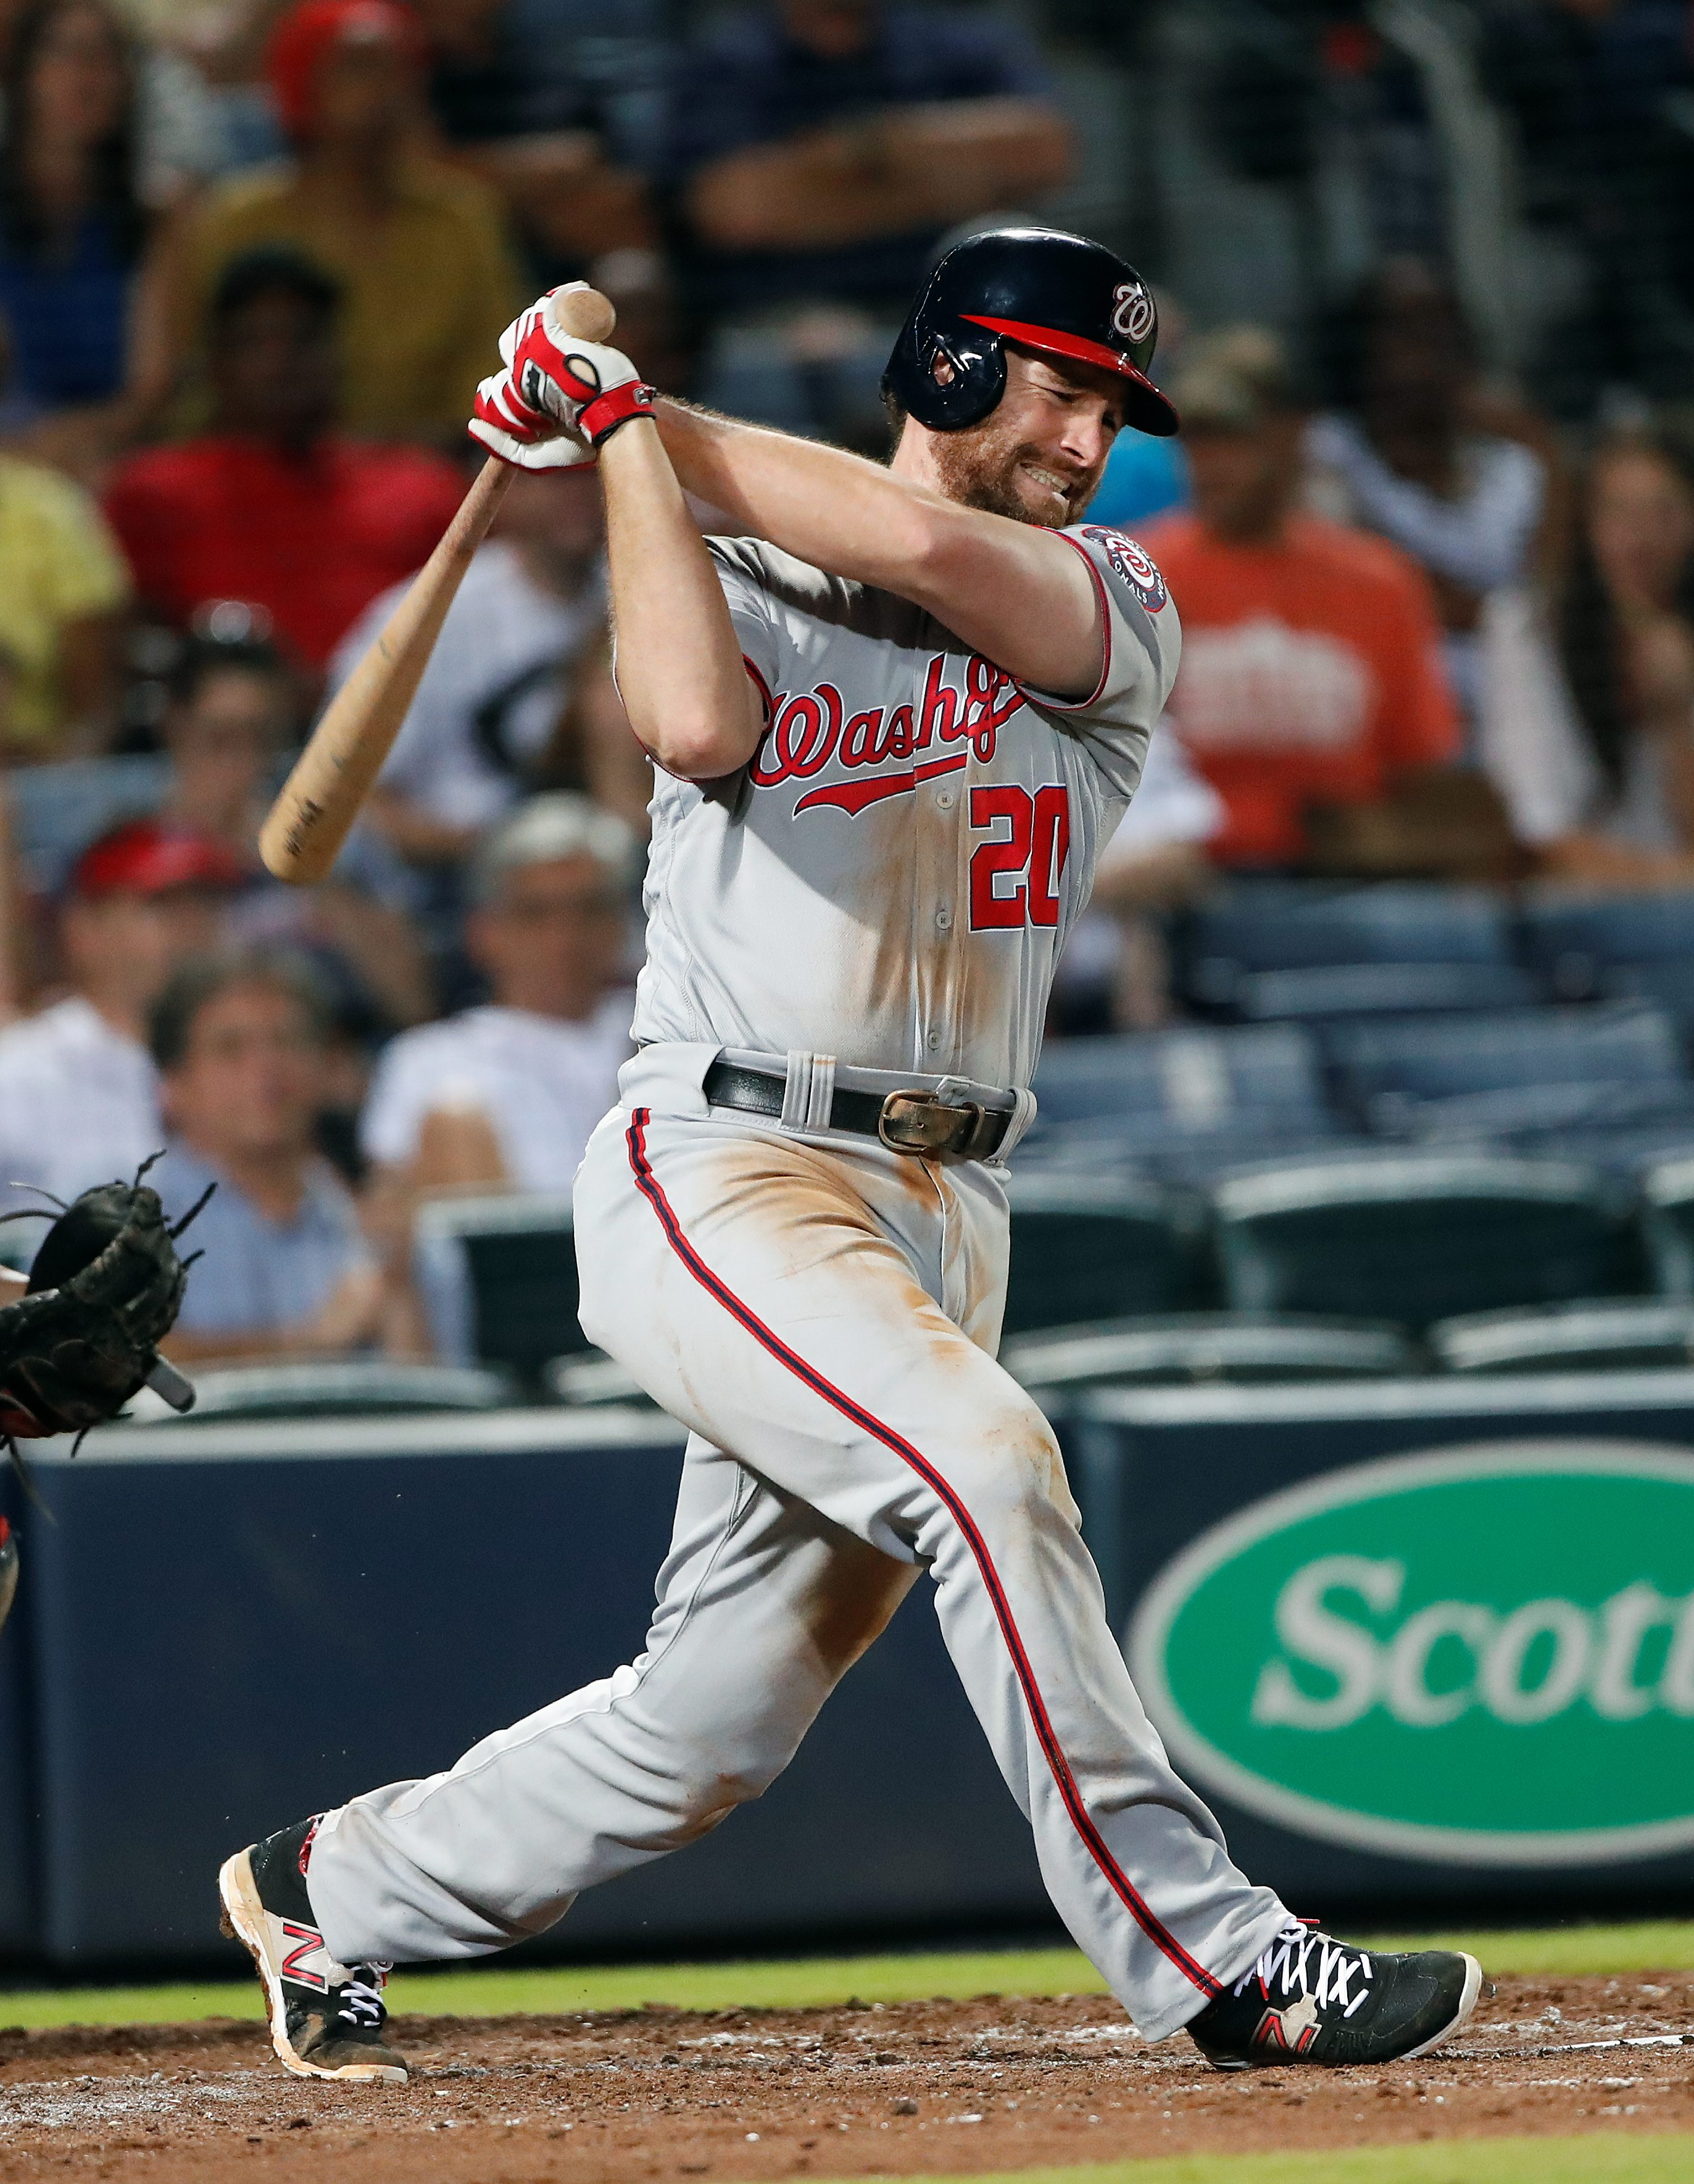 9_262016_nationals-braves-baseball8201